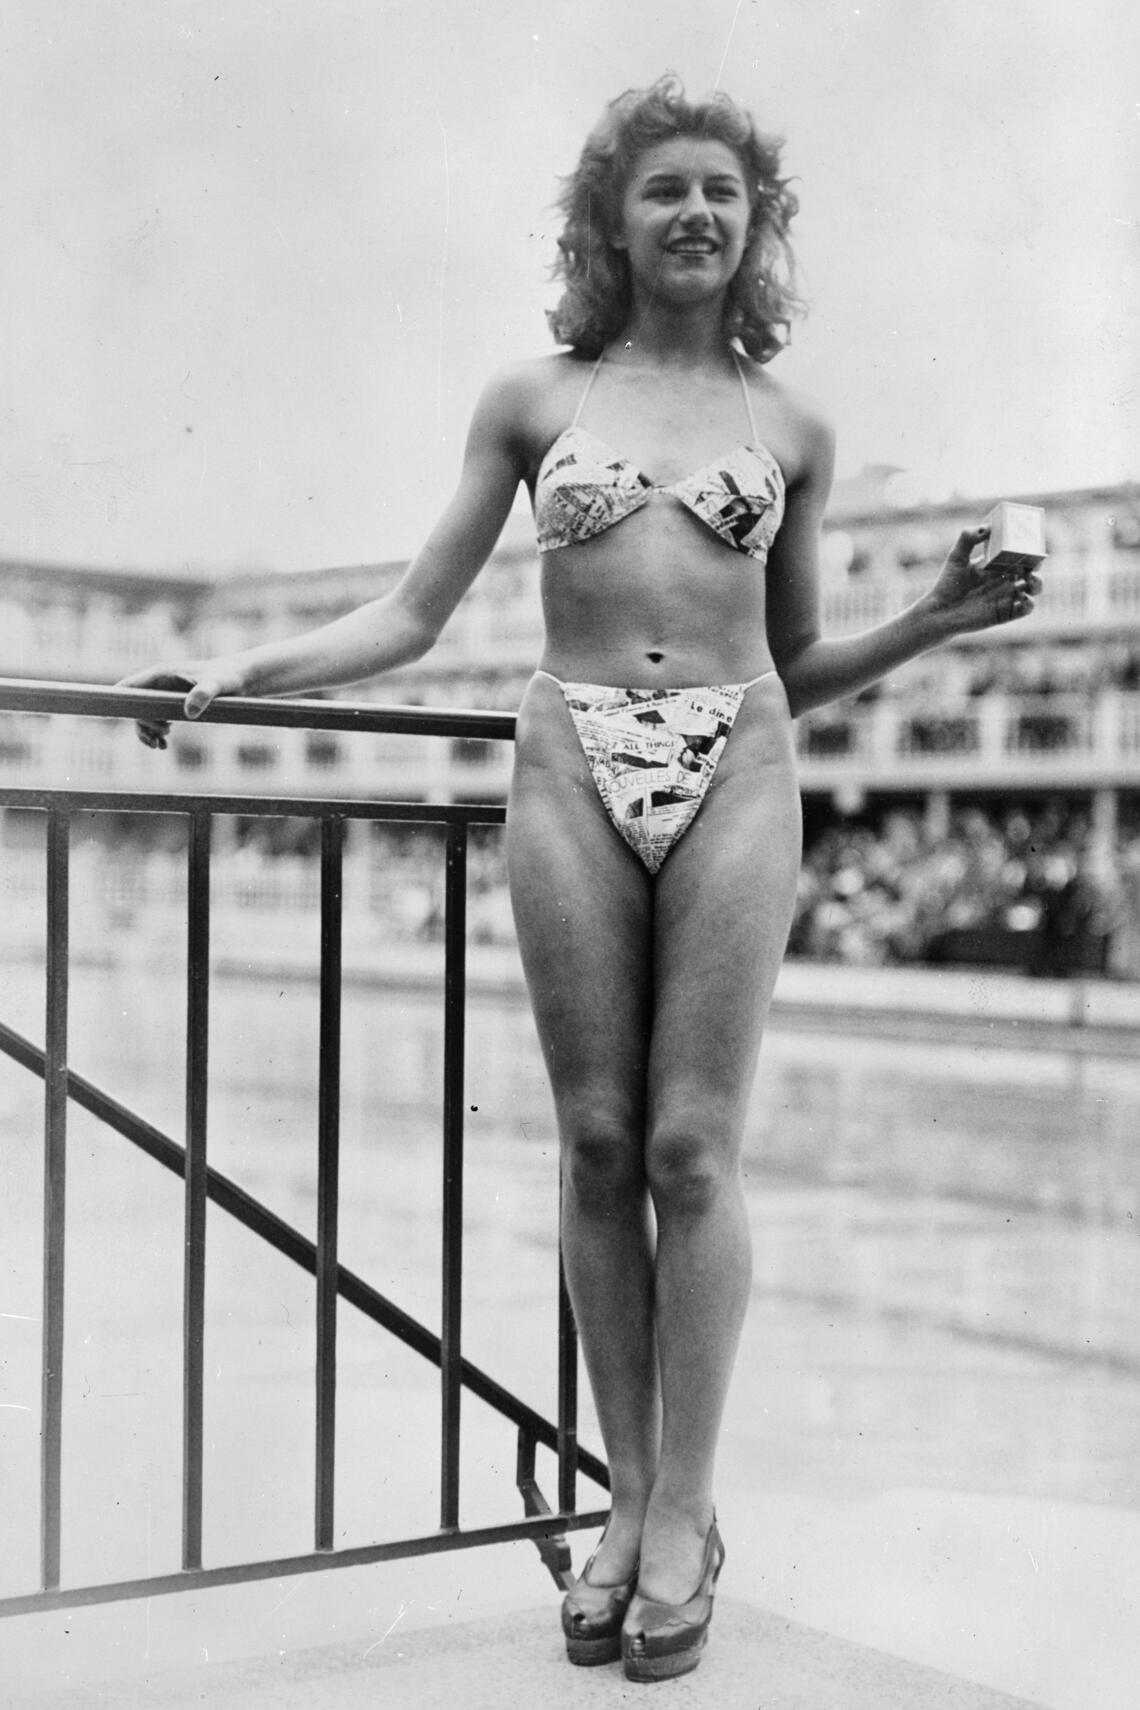 The new 'Bikini' swimming costume (in a newsprint-patterned fabric), which caused a sensation at a beauty contest at the Molitor swimming pool in Paris. Designer Louis Reard was unable to find a 'respectable' model for his costume and the job of displaying it went to 19-year-old Micheline Bernardini, a nude dancer from the Casino de Paris. She is holding a small box into which the entire costume can be packed. Celebrated as the first bikini, Luard's design came a few months after a similar two-piece design